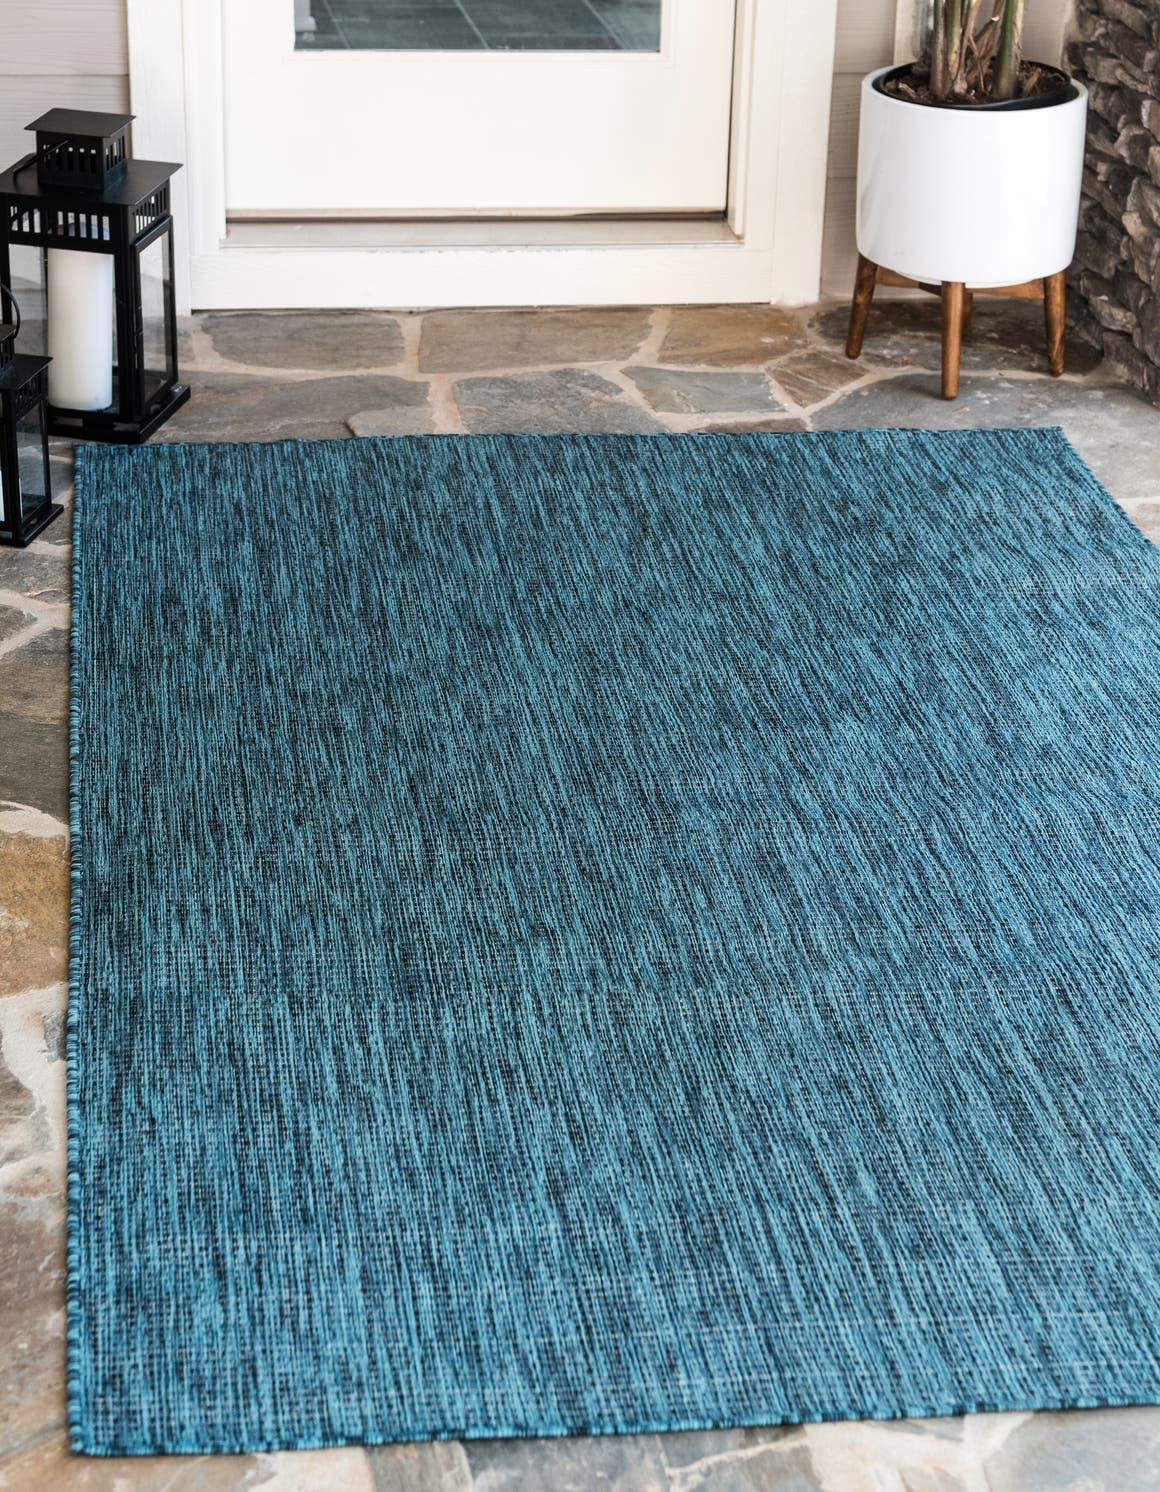 Unique Loom Outdoor Solid Collection Casual Transitional Indoor and Outdoor Flatweave Teal Area Rug 9 0 x 12 0